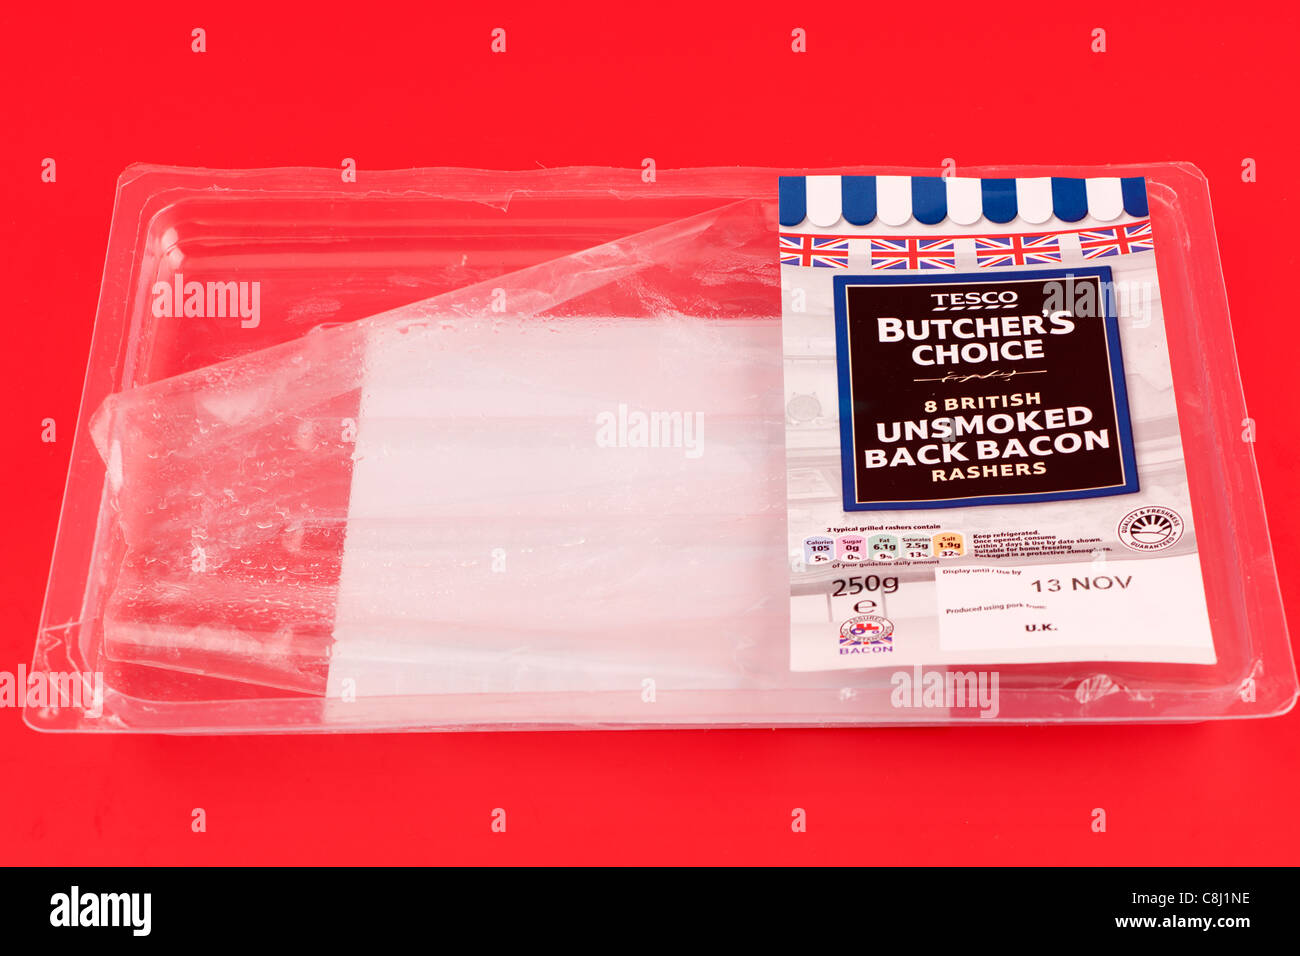 Empty clear plastic packaging tray for rashers of bacon - Stock Image